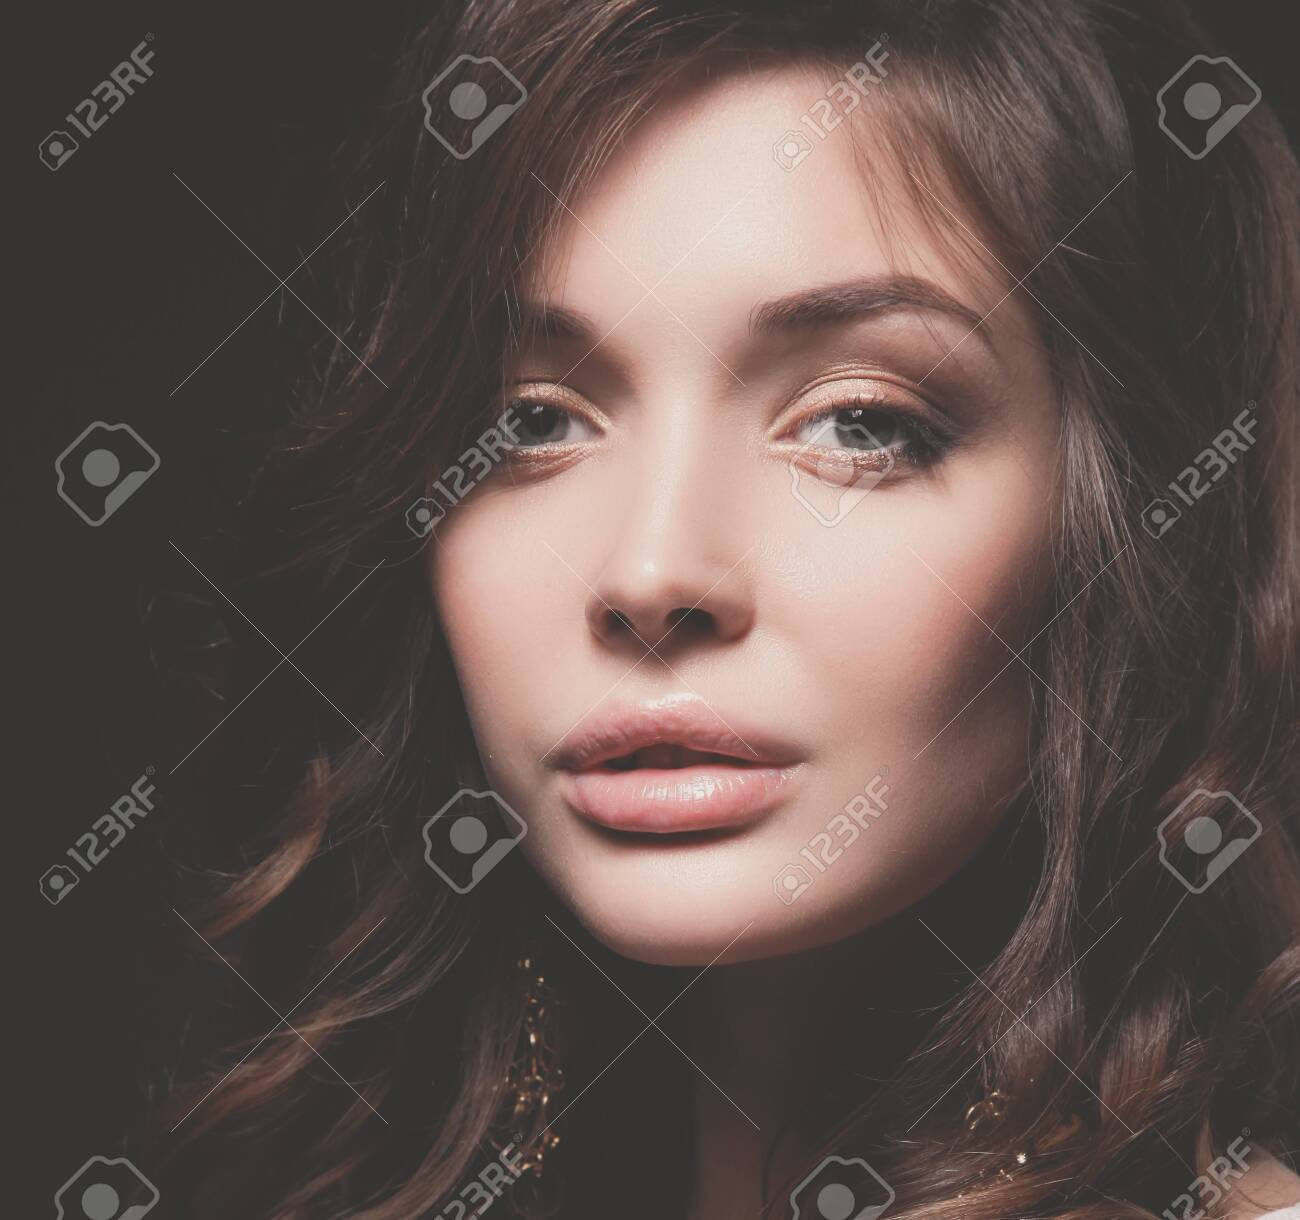 Portrait of beautiful young woman face. Isolated on dark background. - 121277110